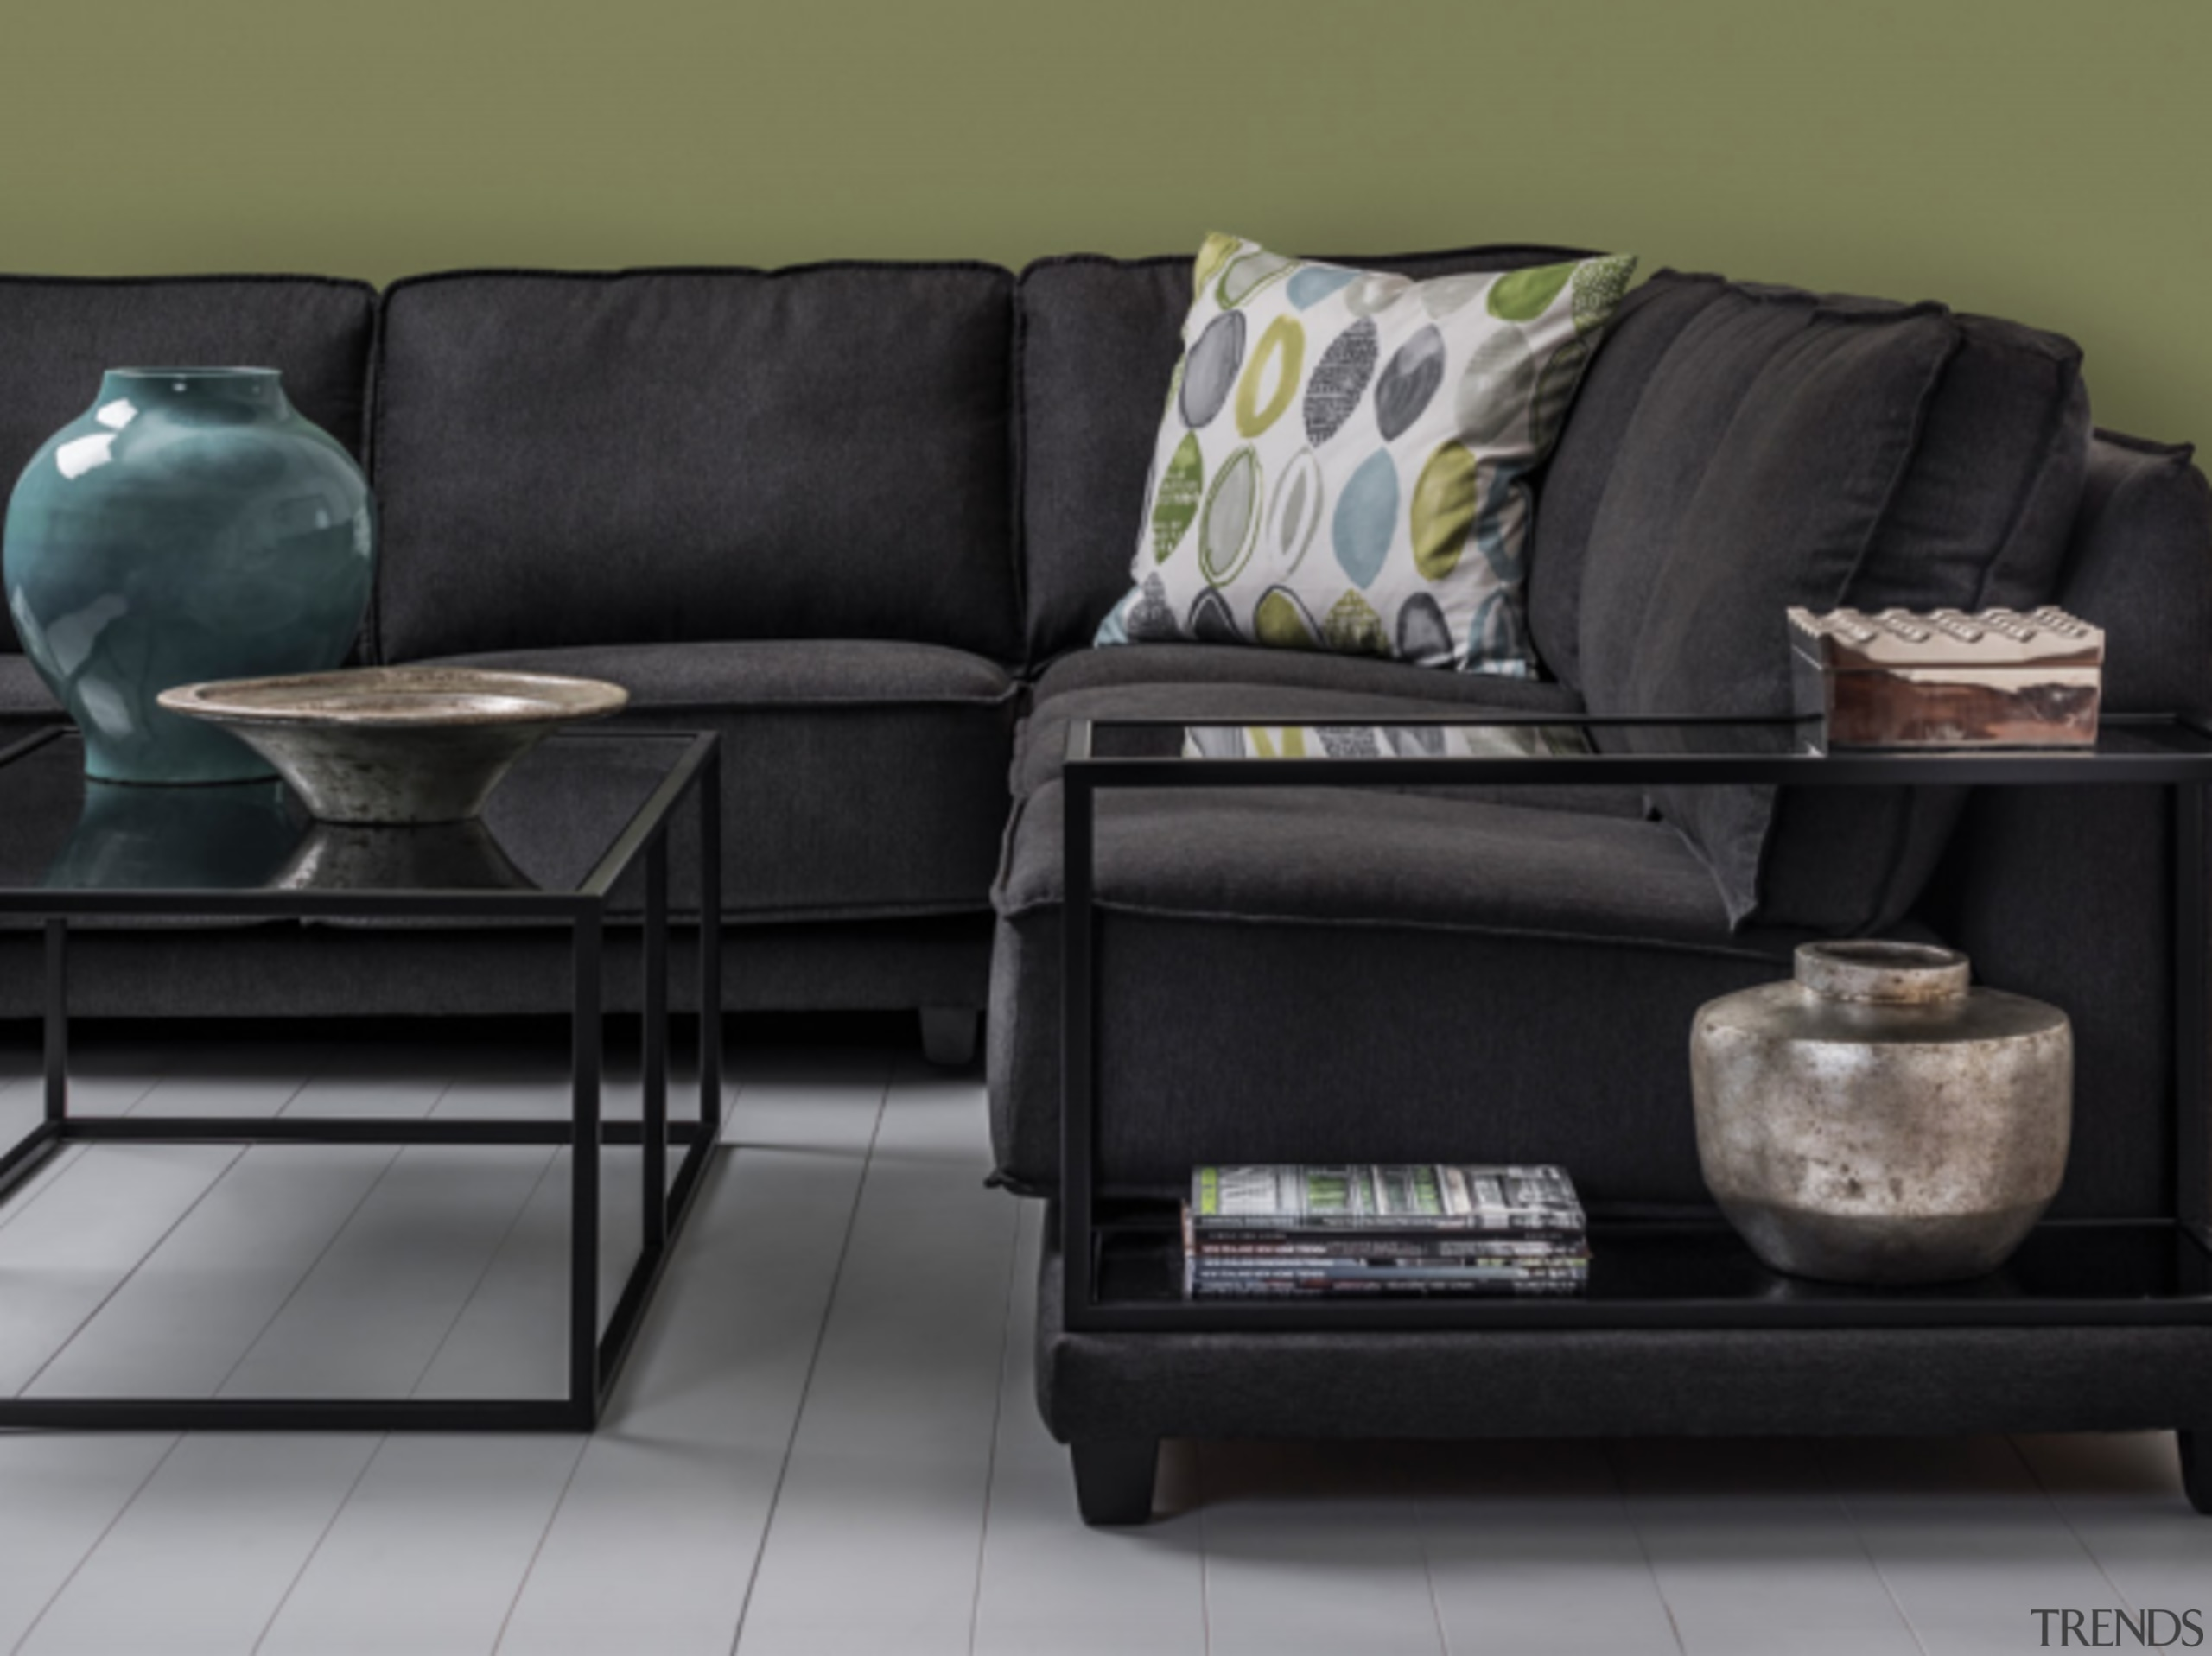 Avoid textured fabrics and bold patterns unless they armrest, black, chair, coffee table, couch, floor, flooring, furniture, interior design, laminate flooring, leather, living room, loveseat, rectangle, room, sofa bed, table, black